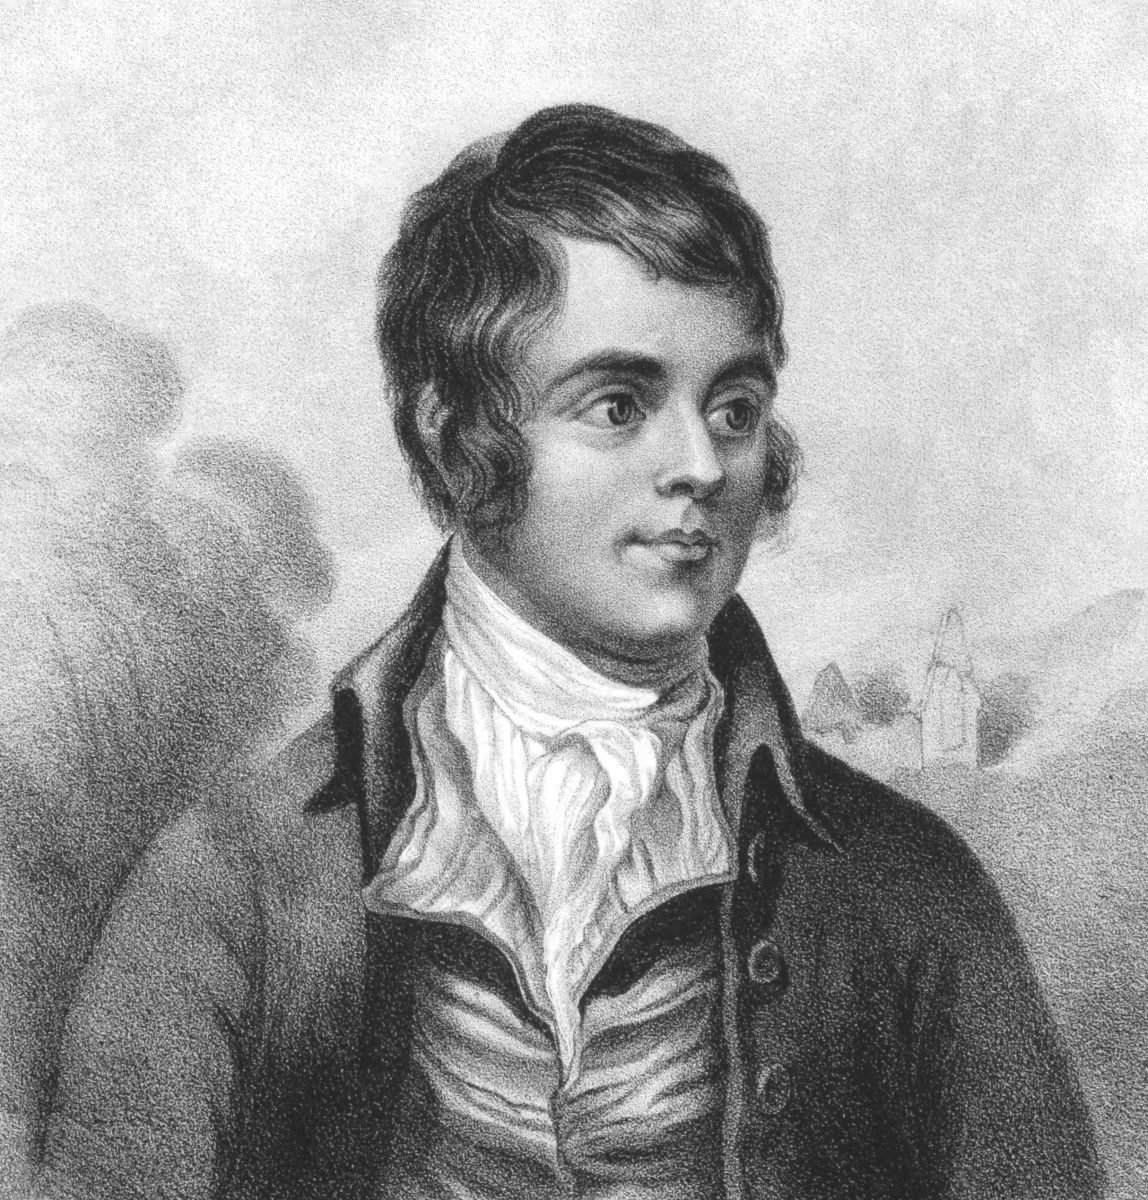 A black and white pencil sketch of the poet, Robert Burns, whose poems touched on  poverty and social class injustices.